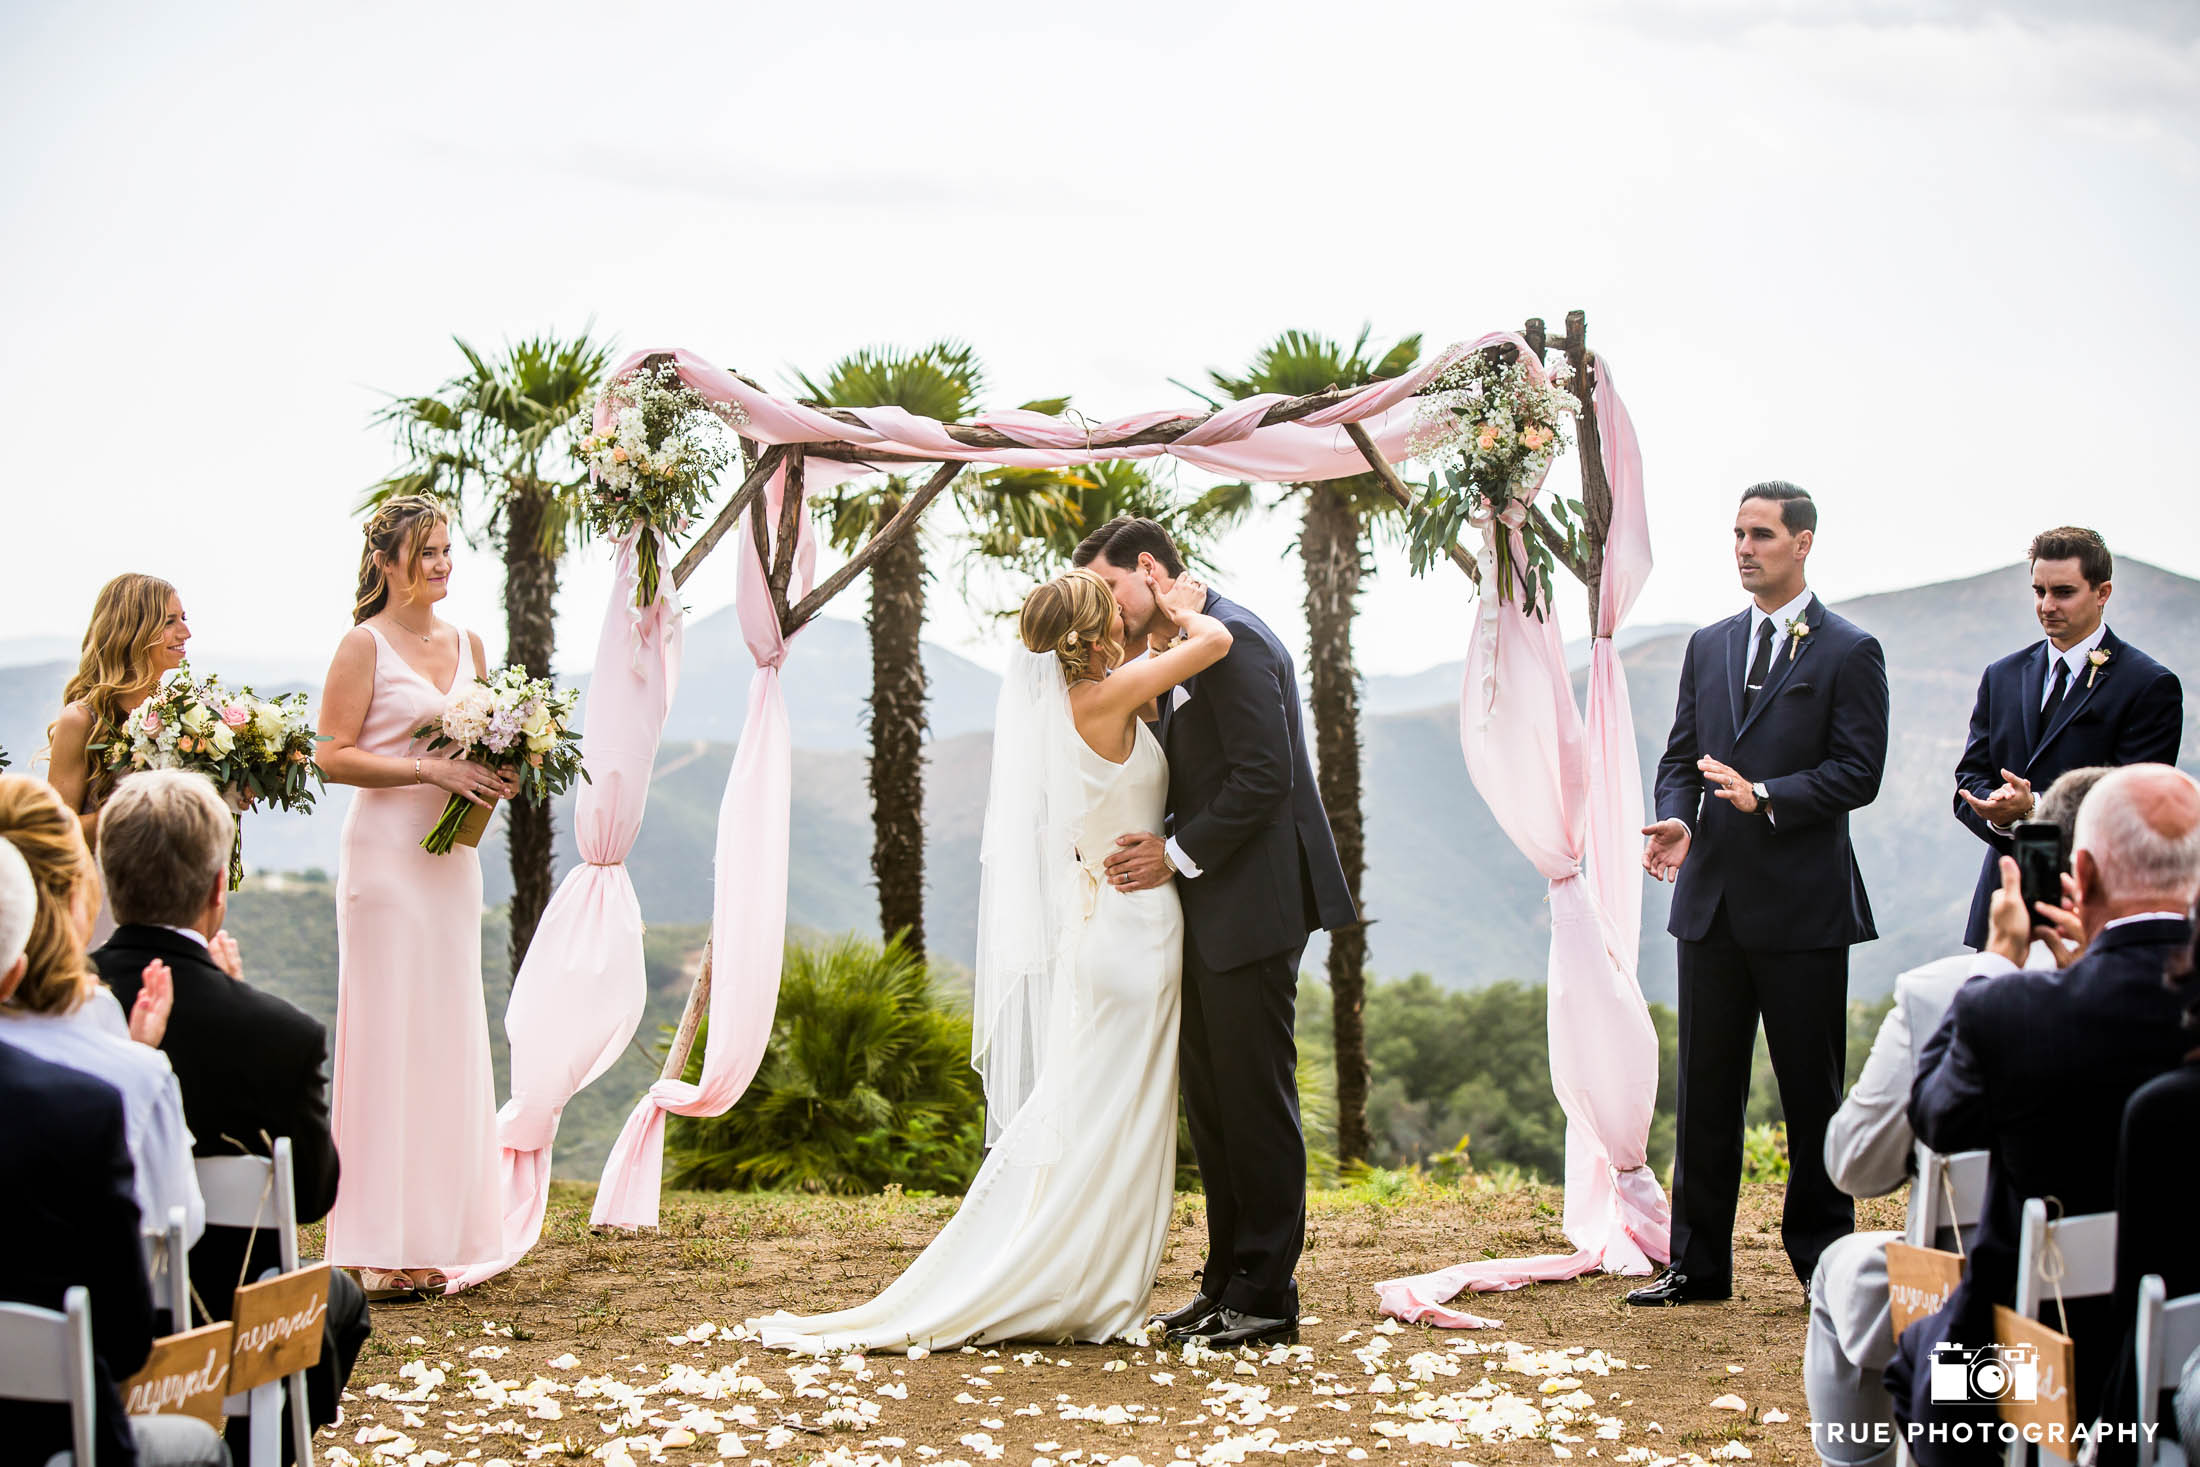 Groom dips Bride during First Kiss at outdoor wedding ceremony overlooking mountains